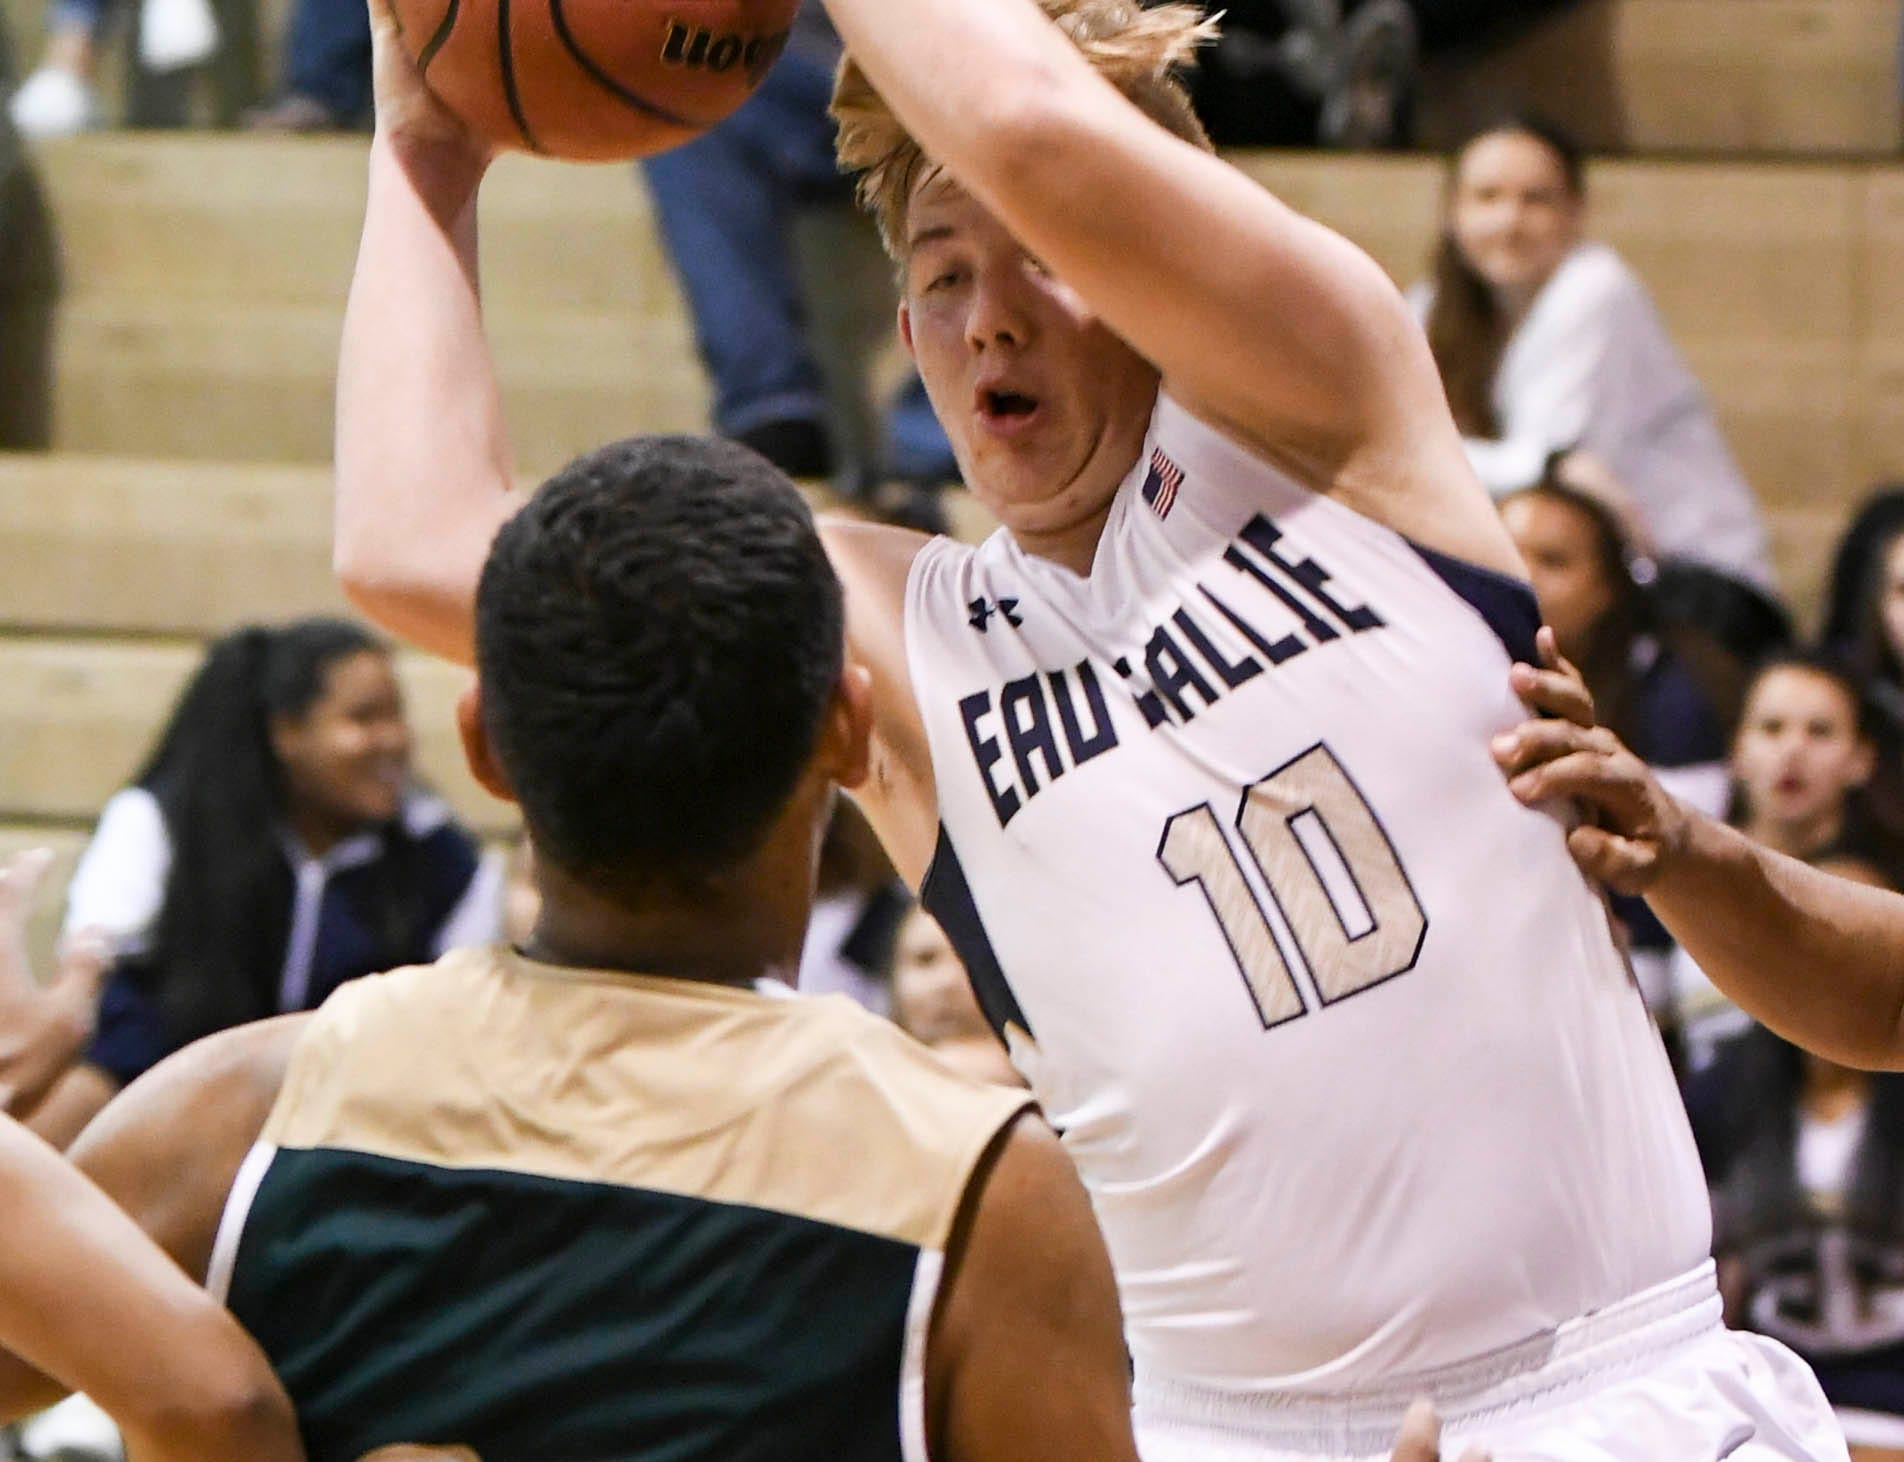 Sam Teter of Eau Gallie grabs a rebound during Wednesday's game against MCC.